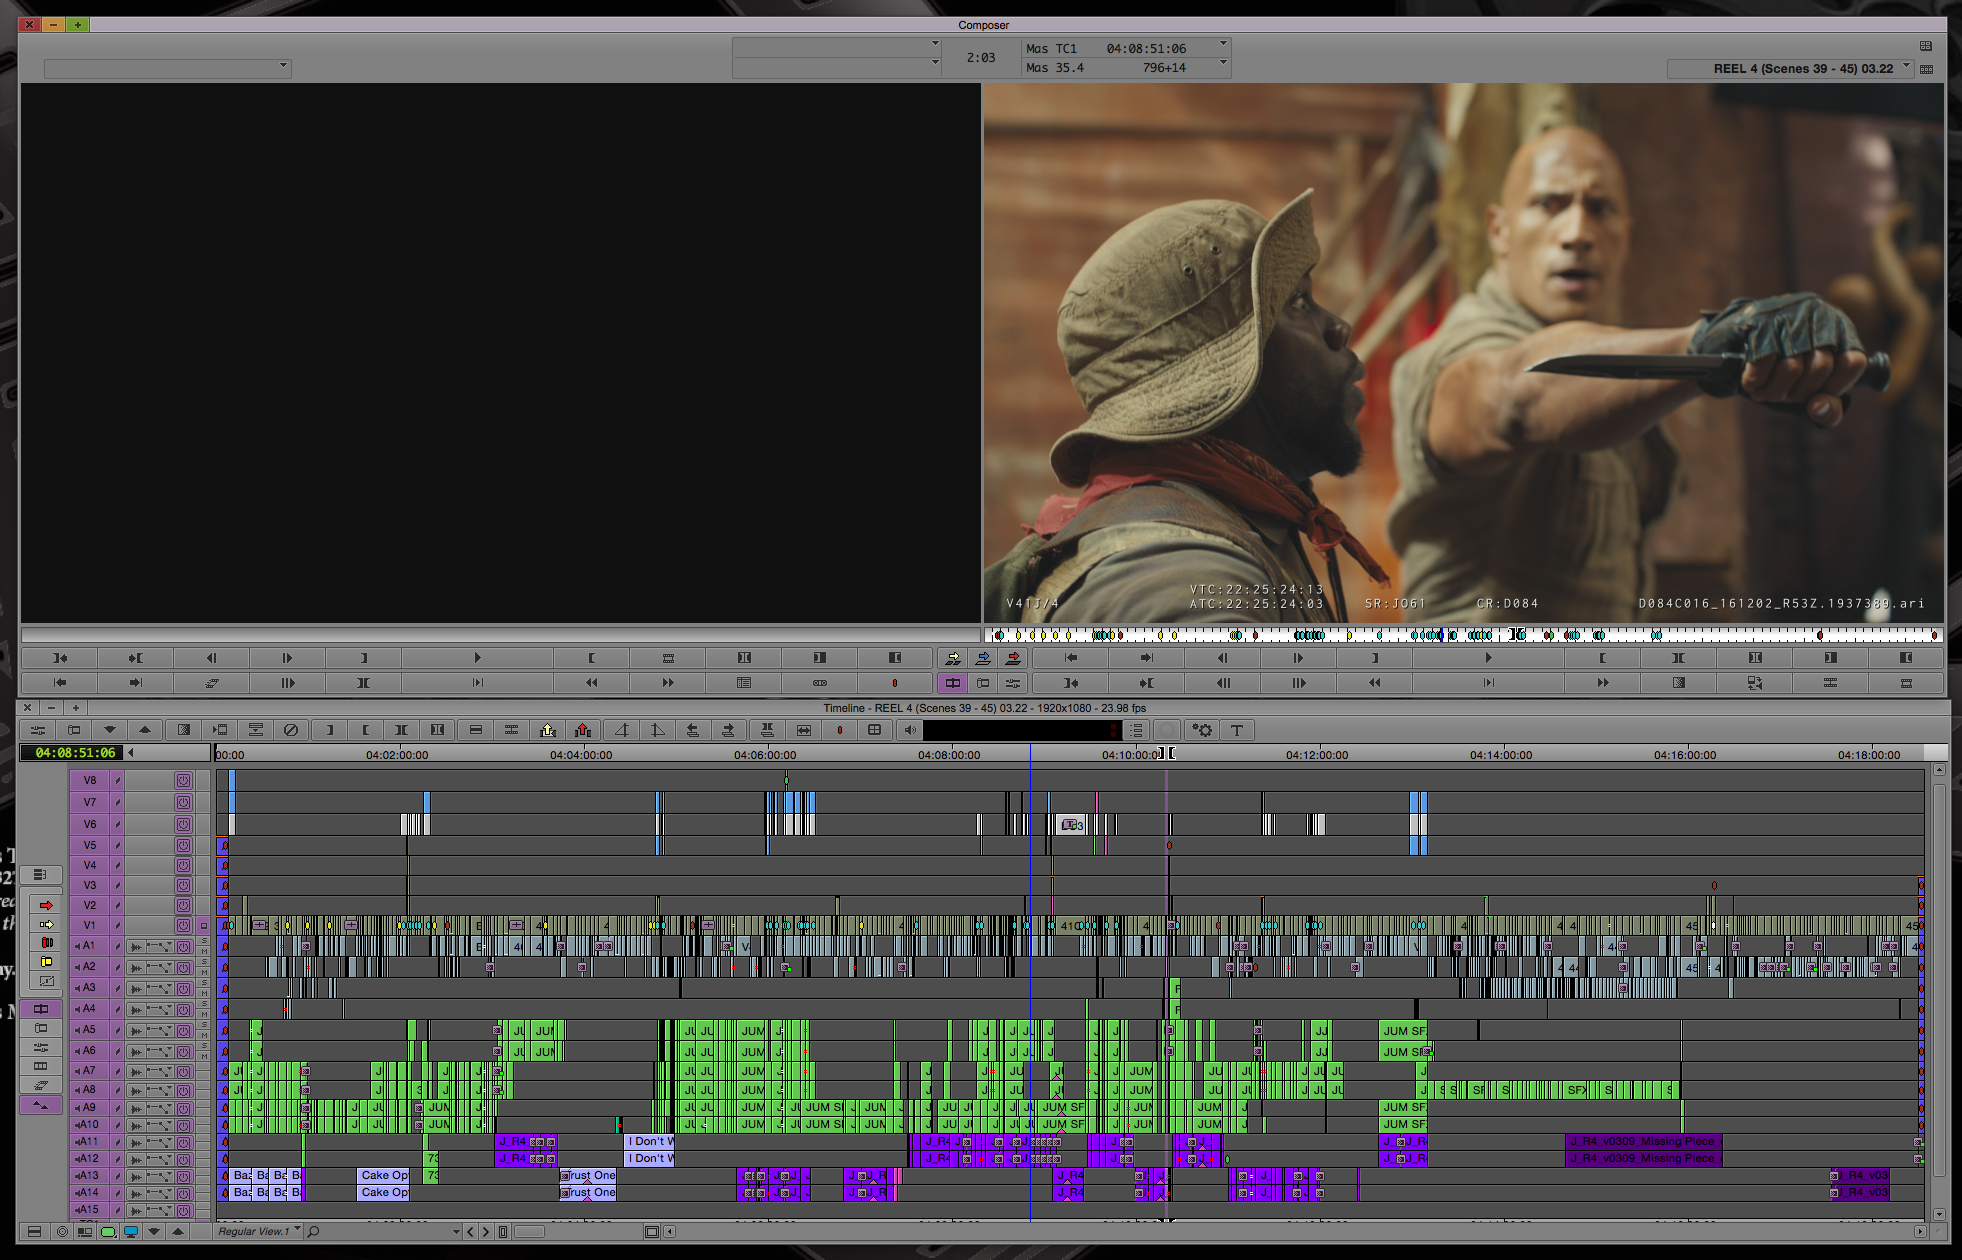 ART OF THE CUT on editing JUMANJI: Welcome to the Jungle 15